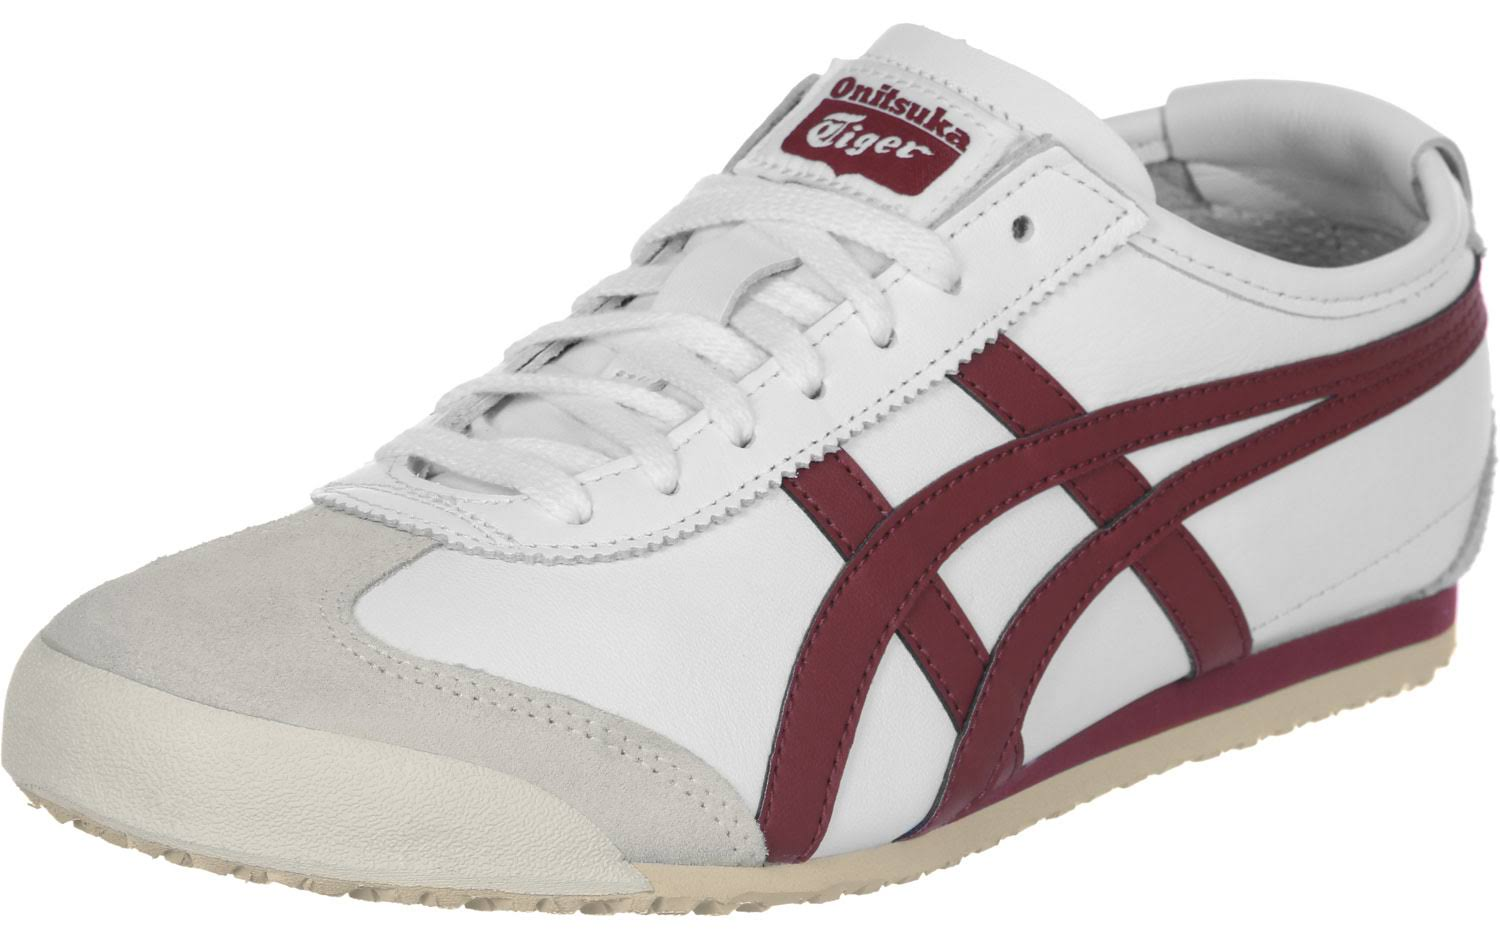 weinrot 66 Onitsuka Weiß Mexico Tiger wxPxIYqUEa